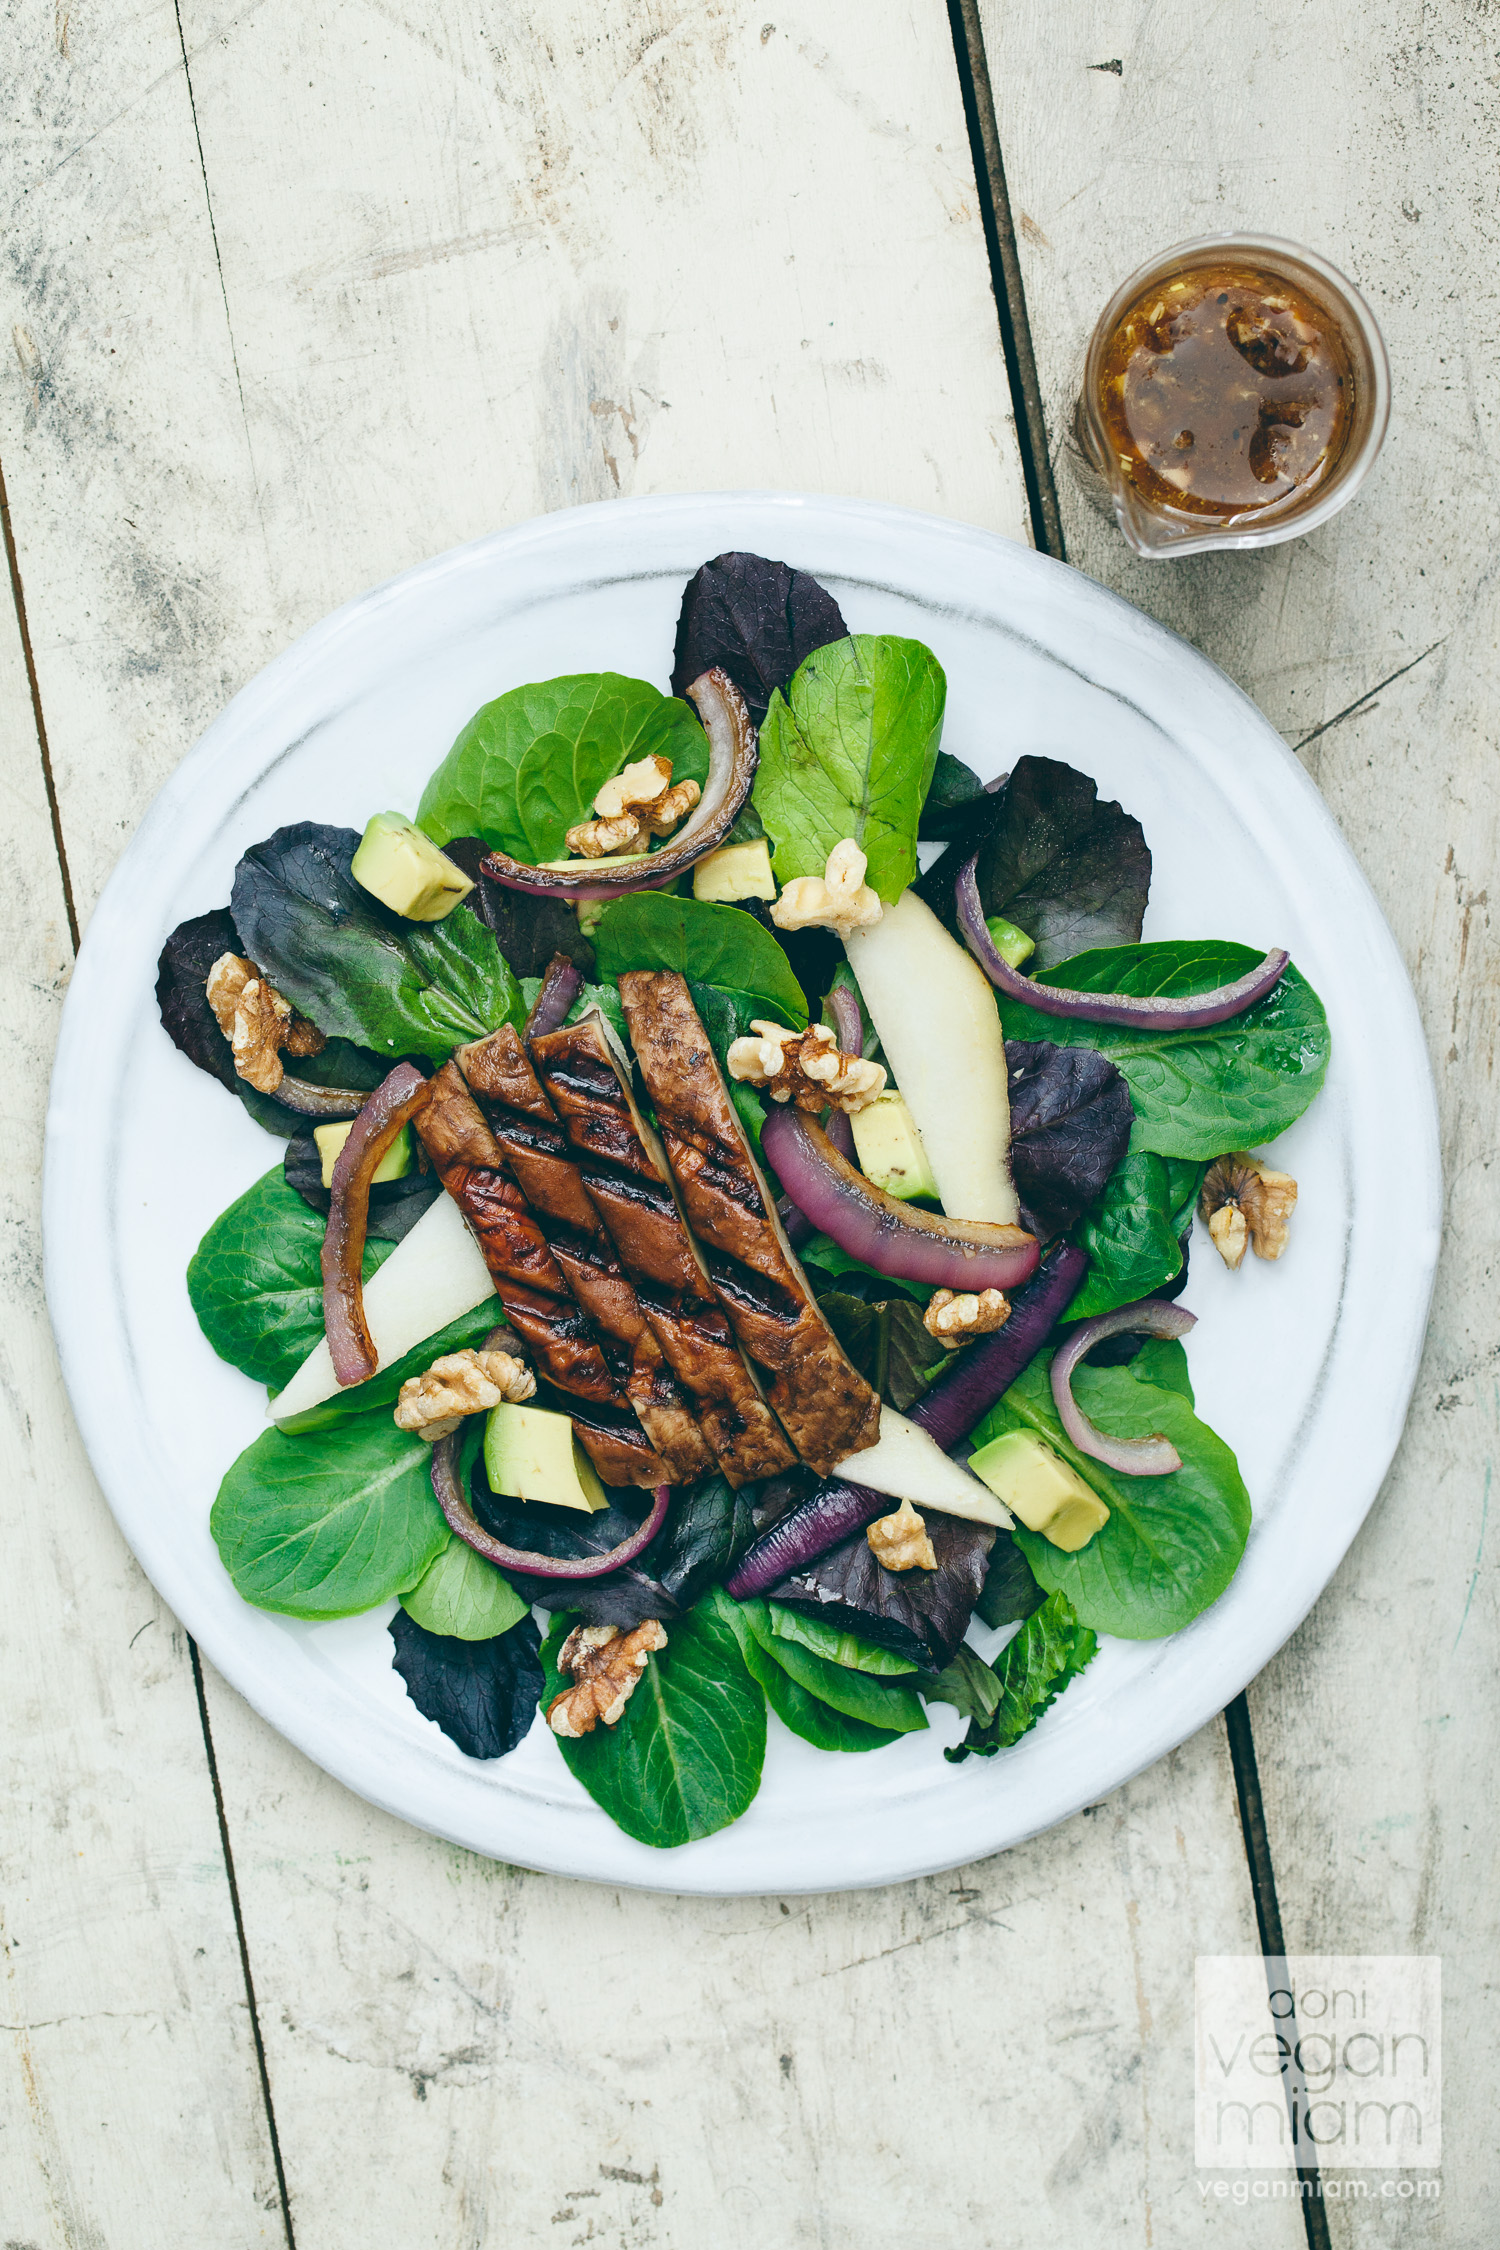 Walnut, Avocado & Pear Salad